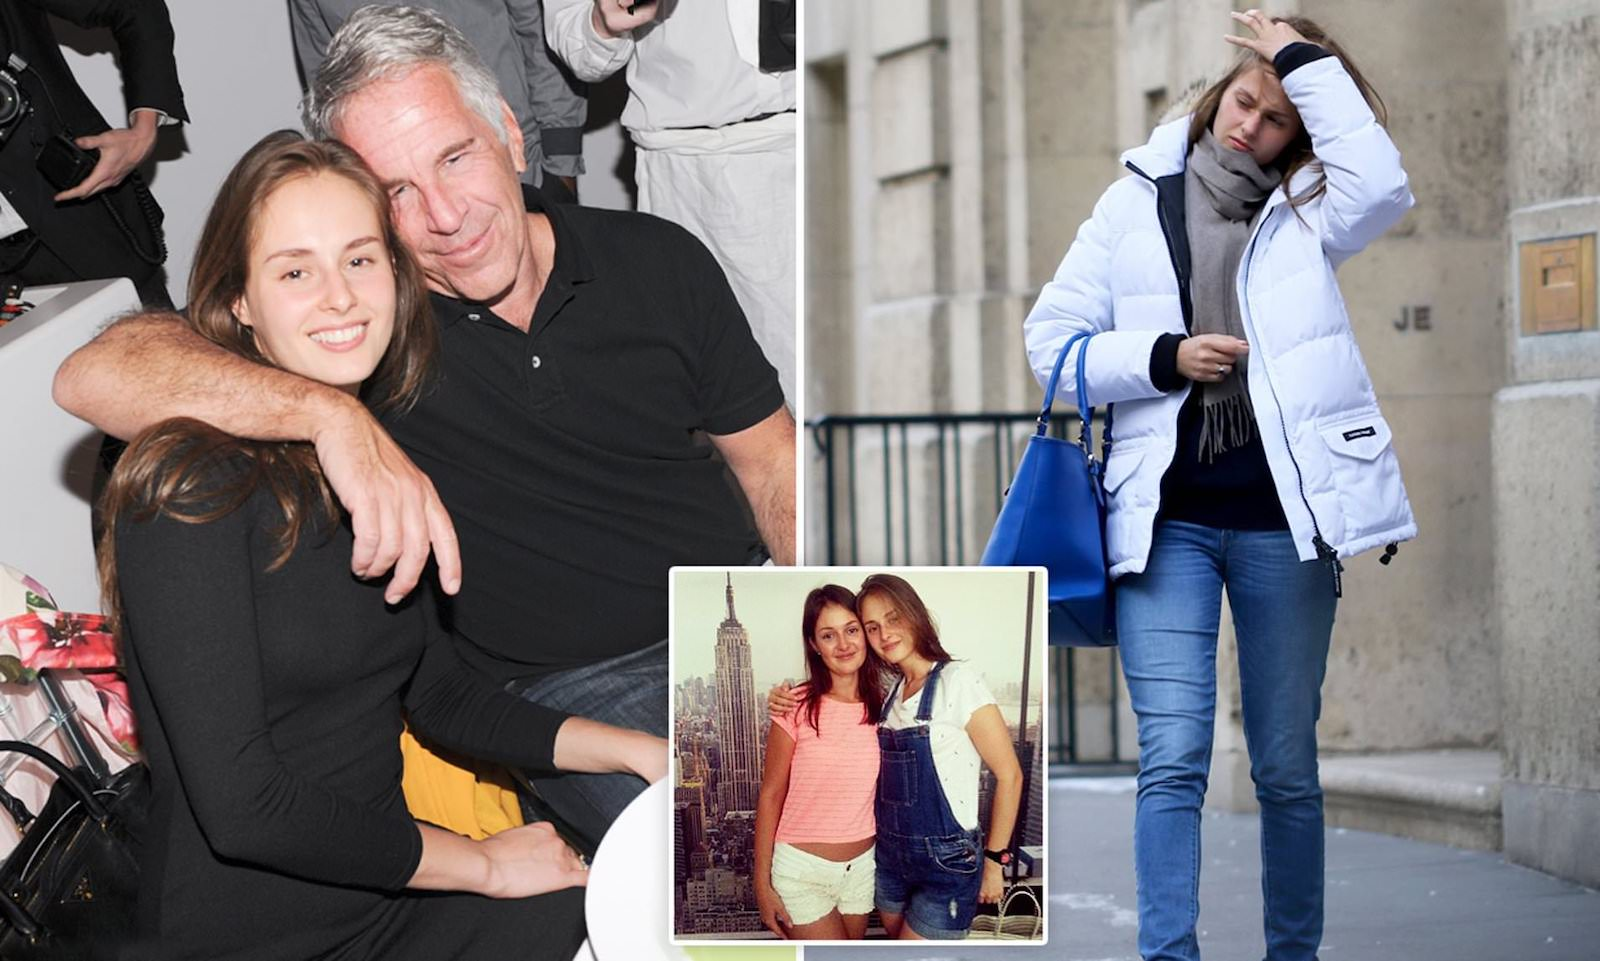 Jeffrey Epstein's secret girlfriend has shown her face for the first time since Epstein died last year. What has she and the rest of Epstein's family done?